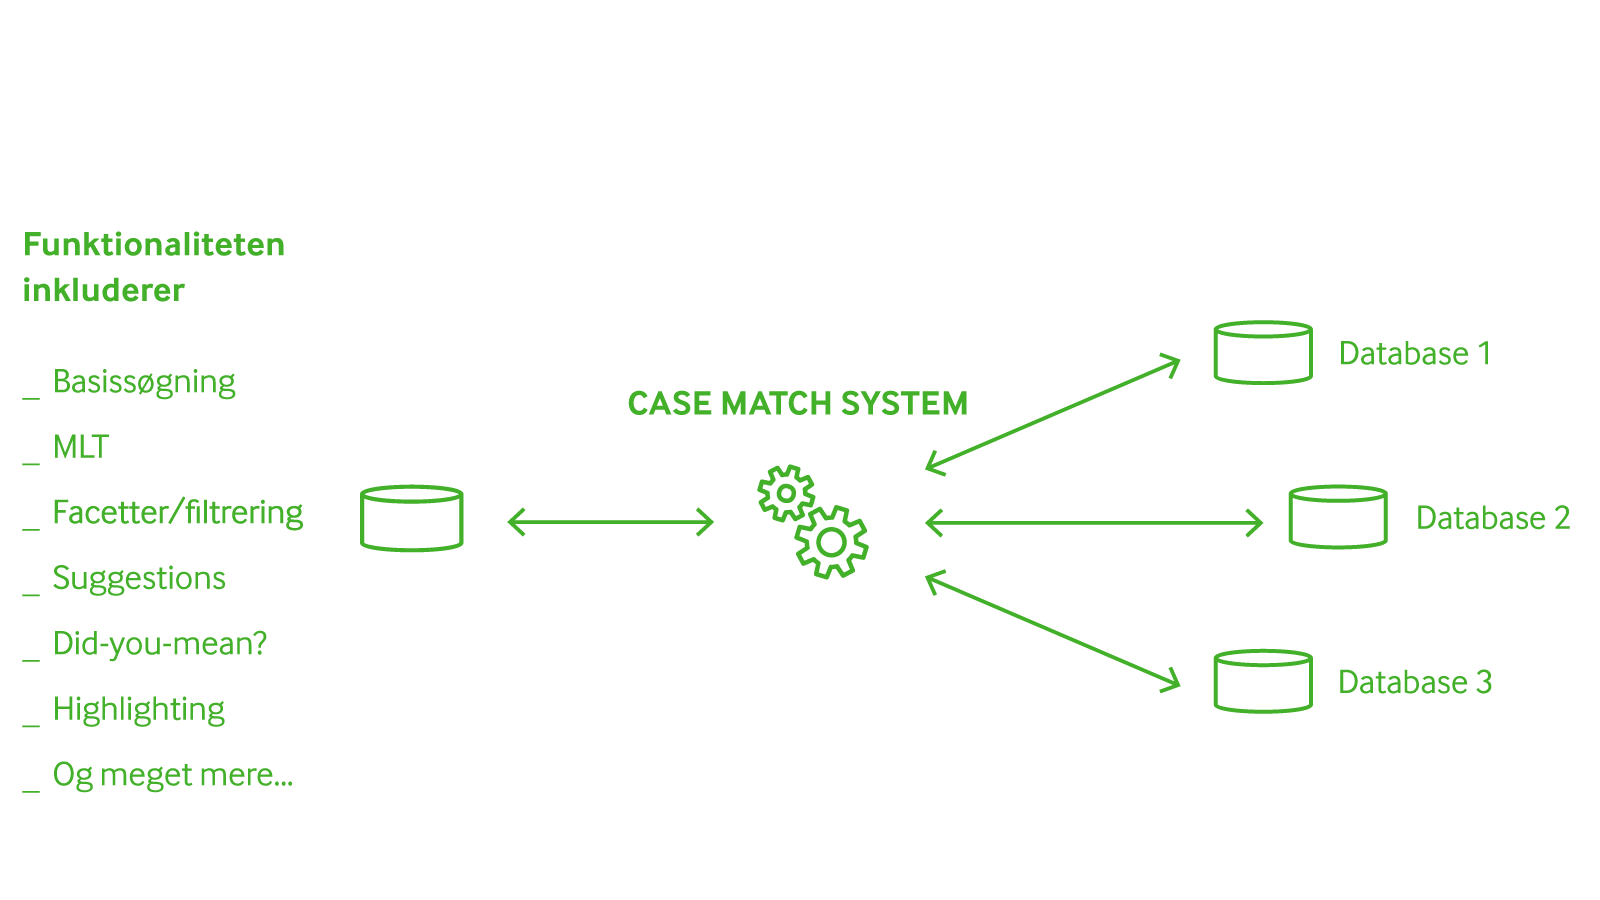 KMD Automated Case Match processer